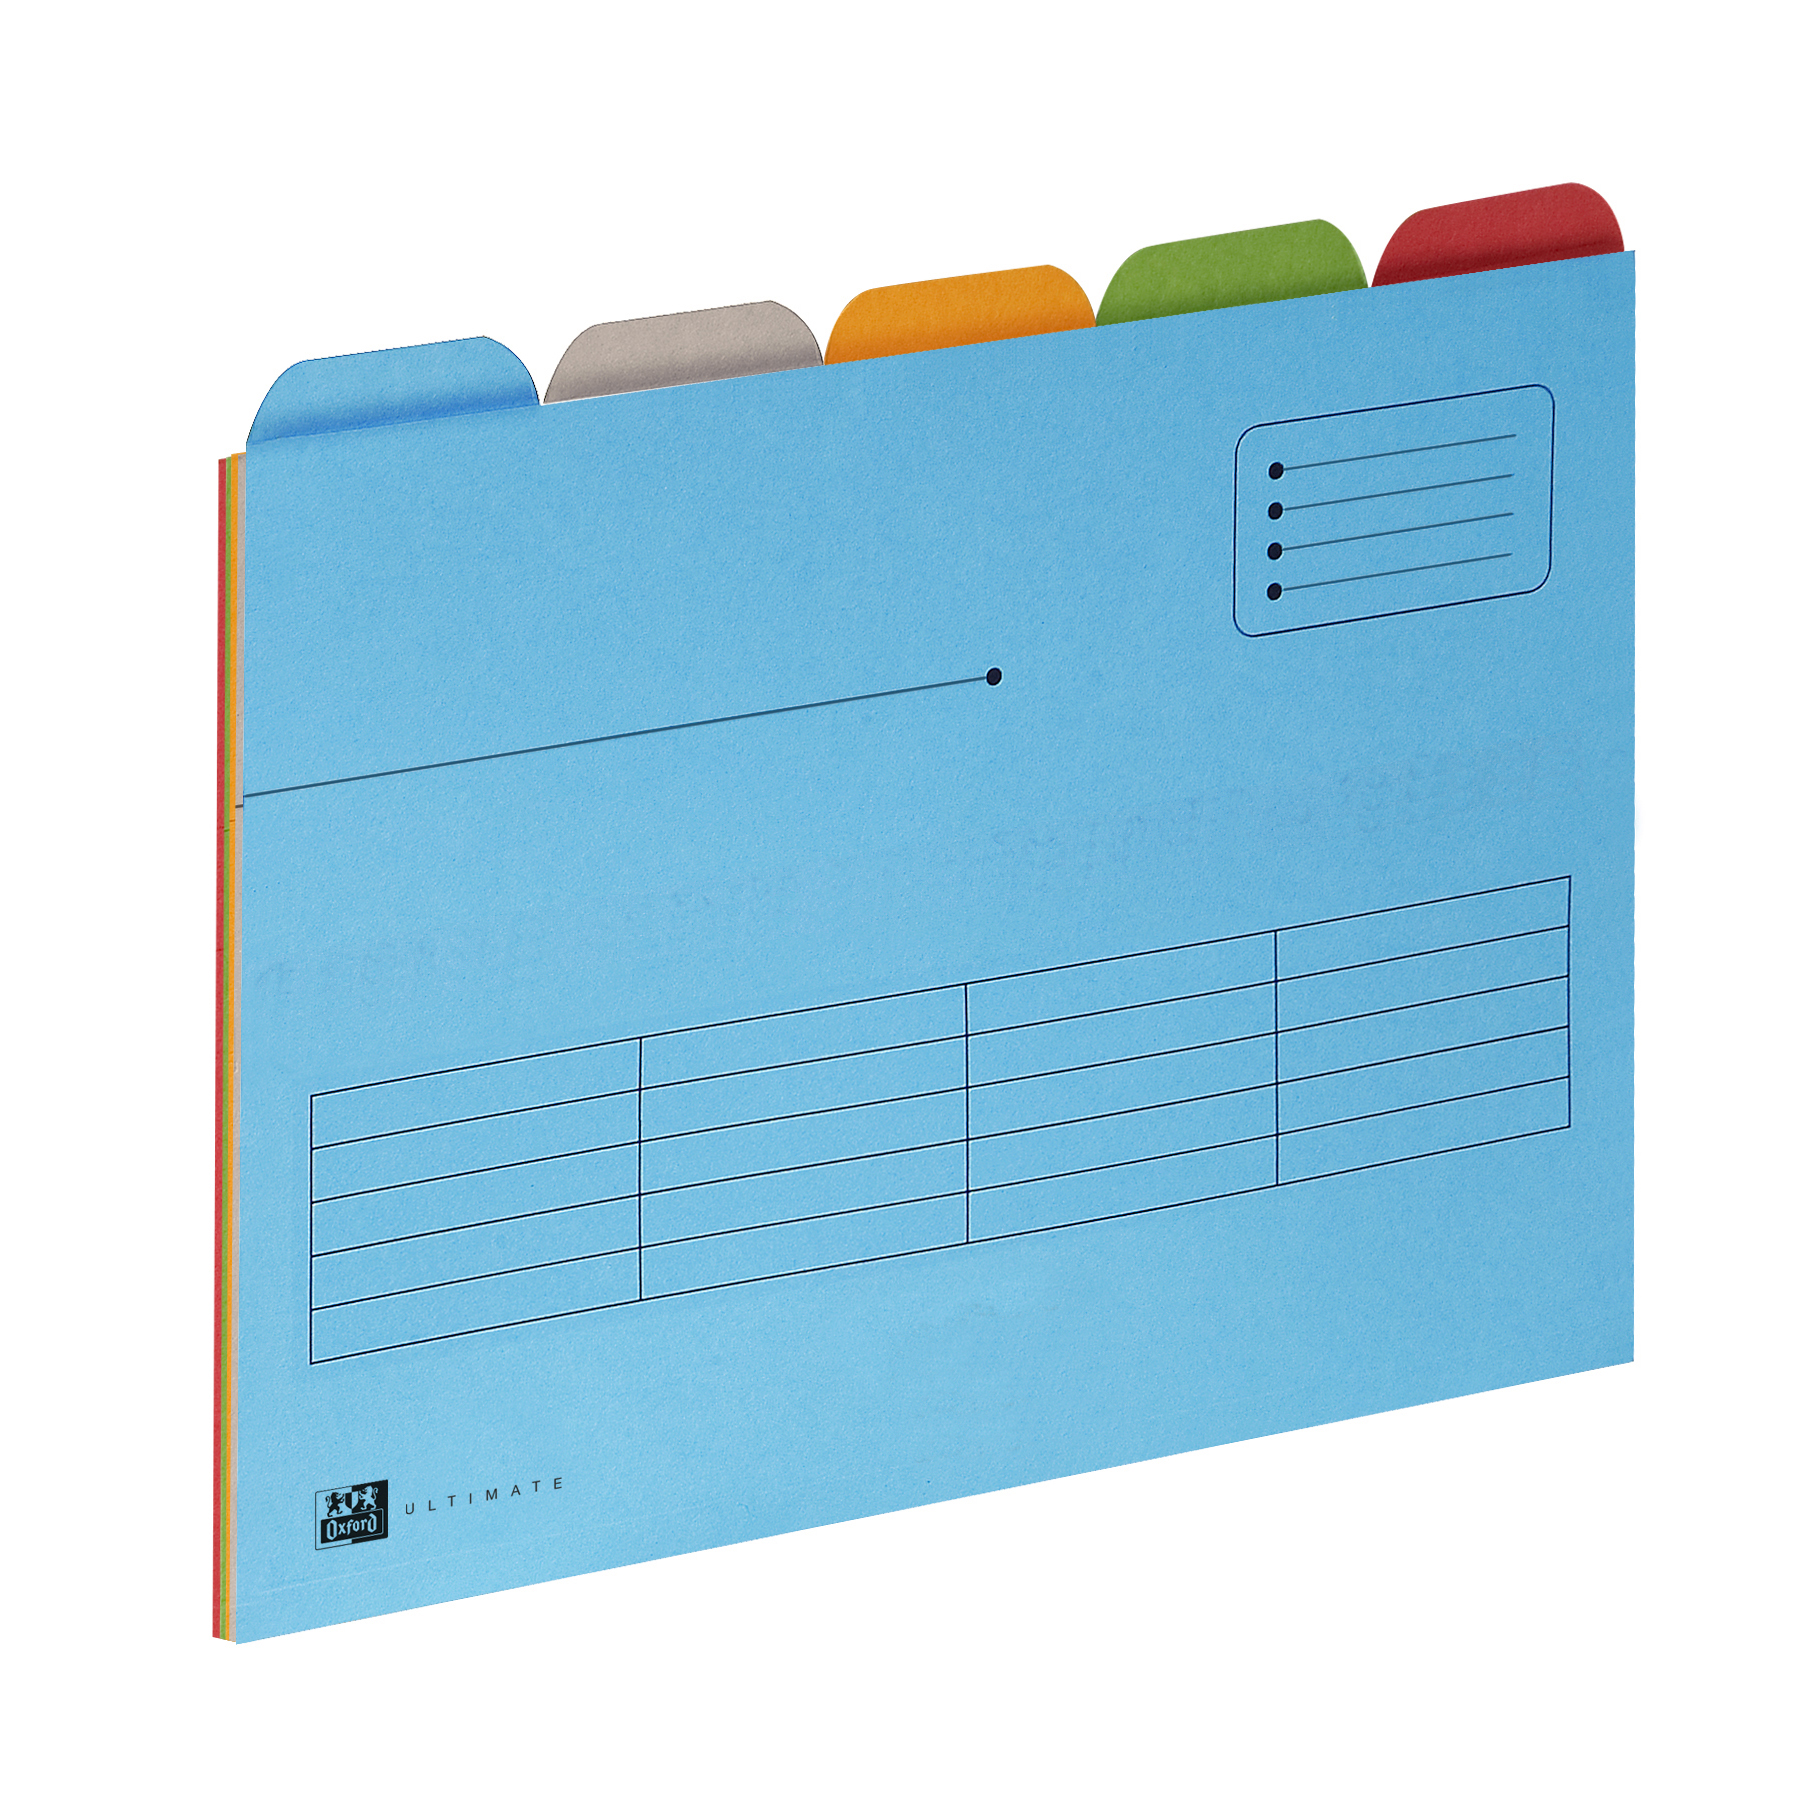 Elba Ultimate Tabbed Folder 240gsm Mediumweight Reinforced Manilla A4 Assorted Ref 100330160 [Pack 25]